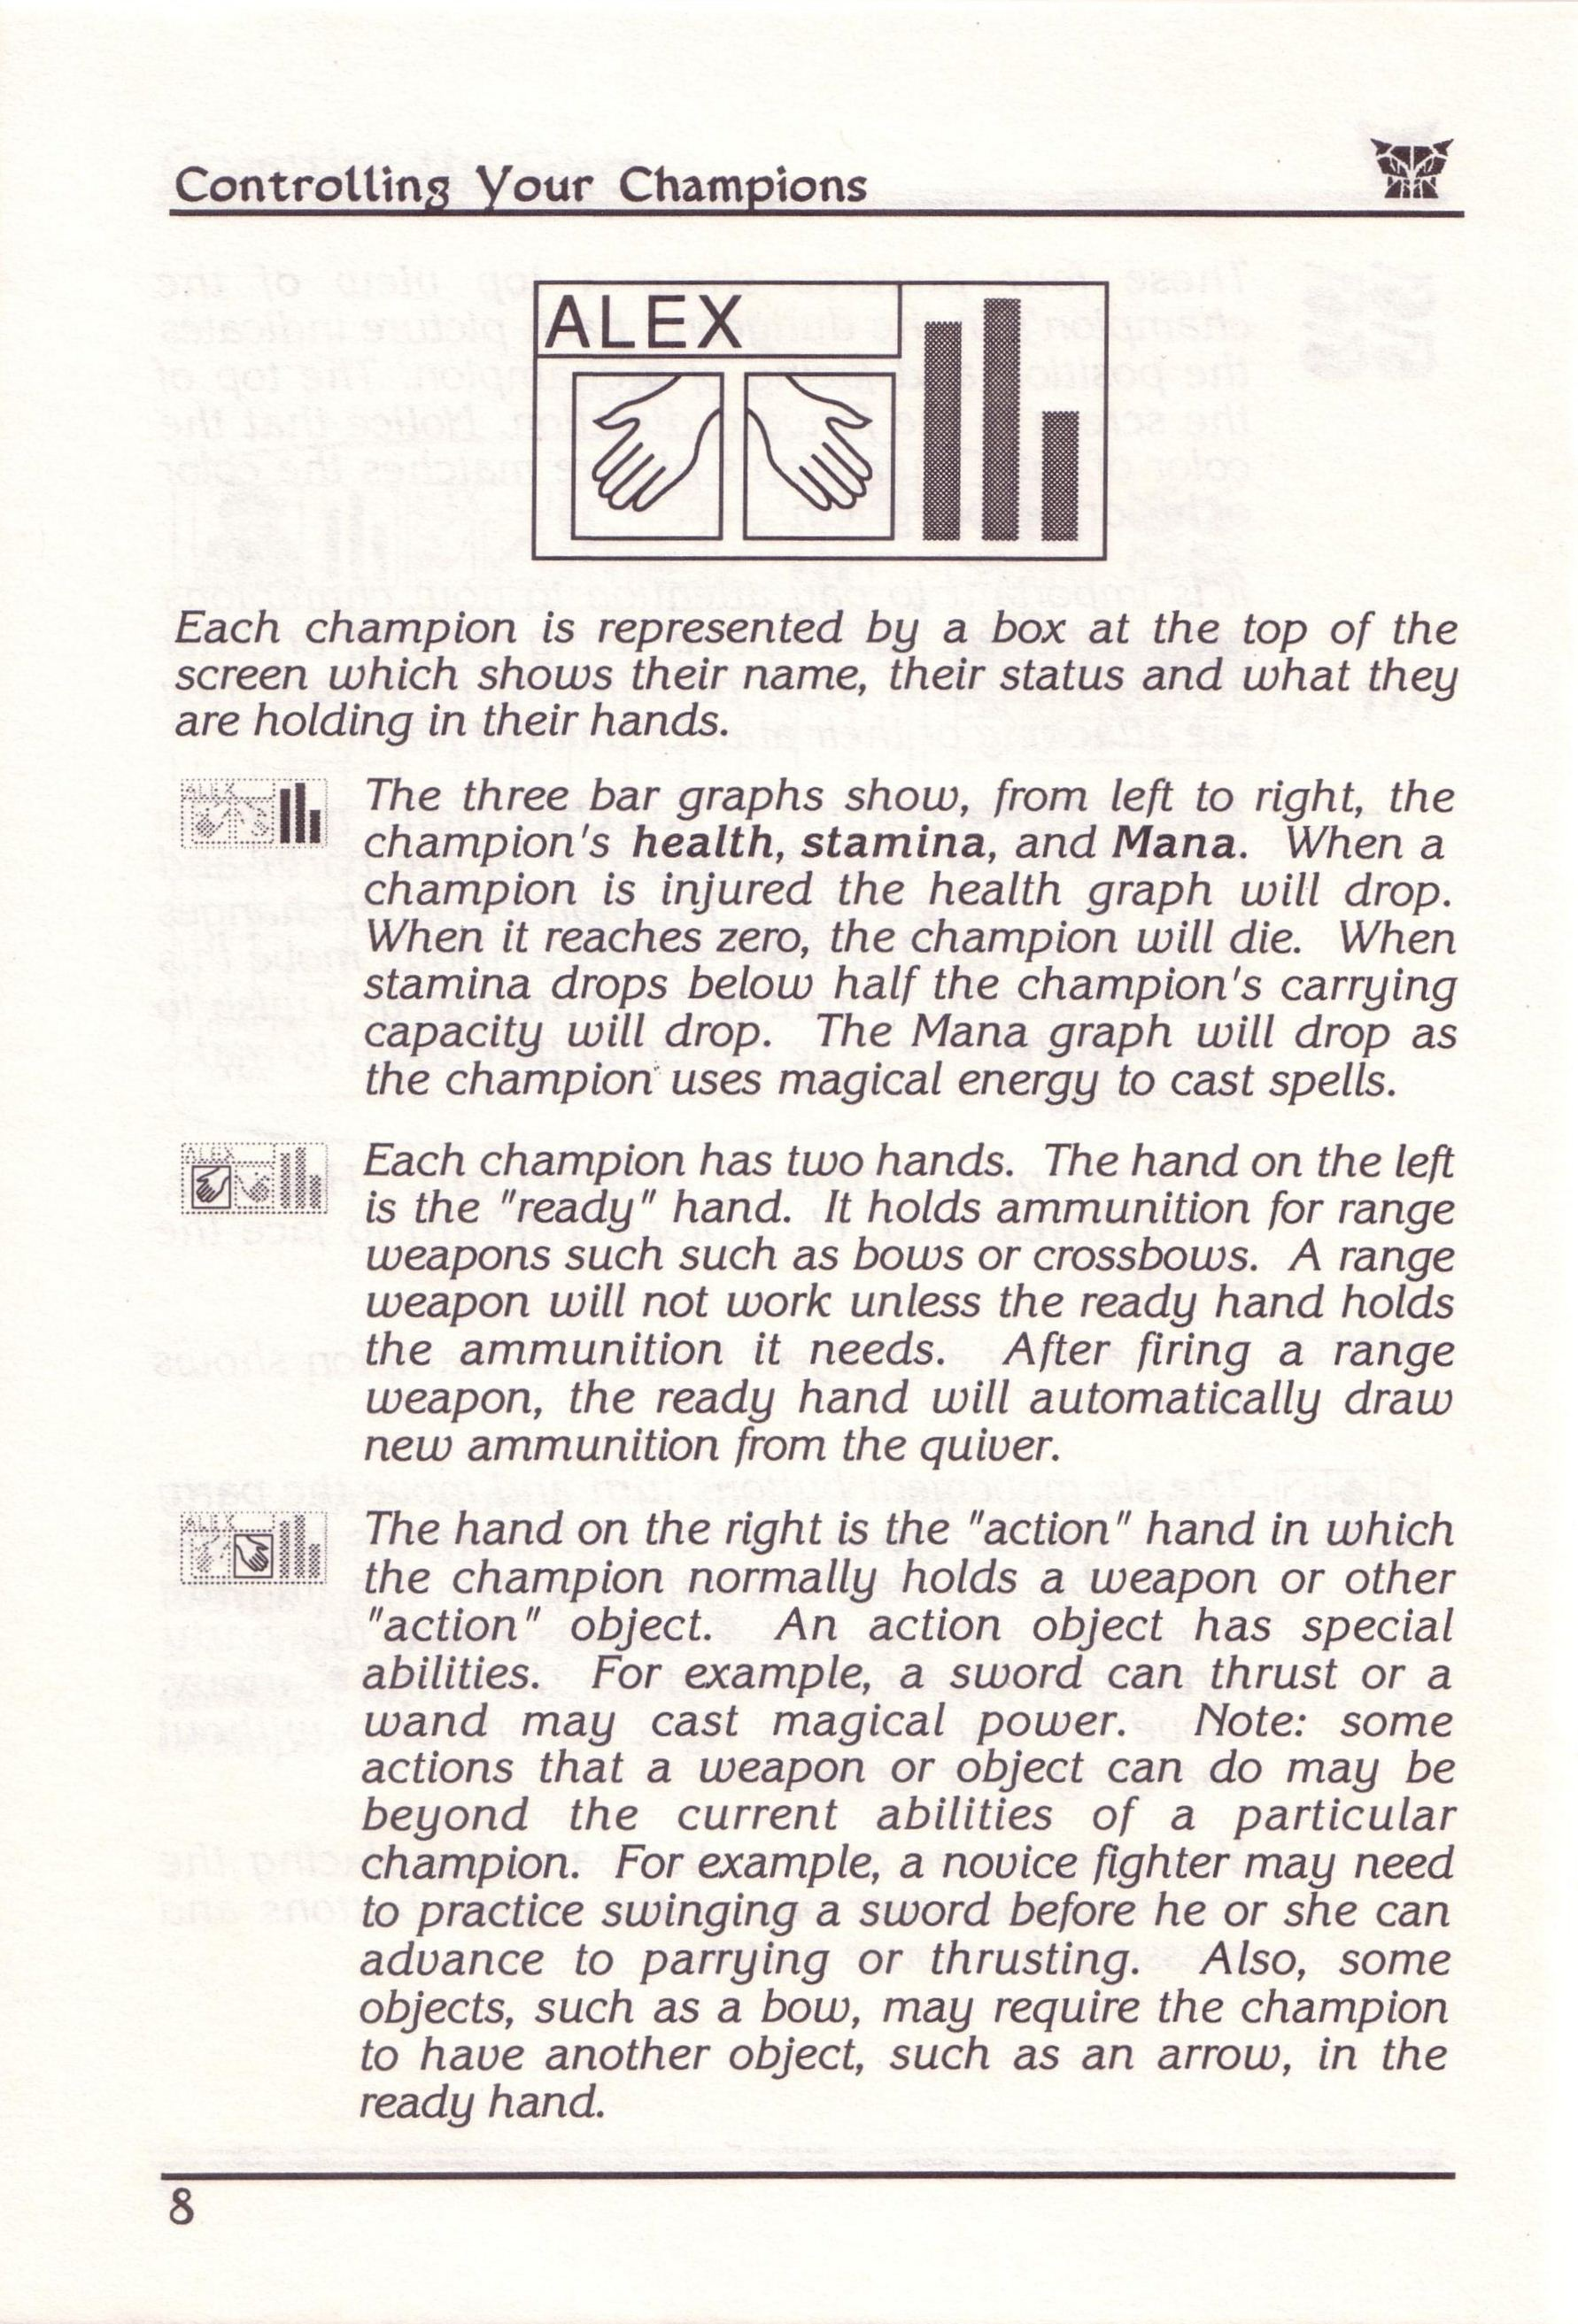 Dungeon Master for PC with FTL Sound Adapter (US Release) - Manual Page 32